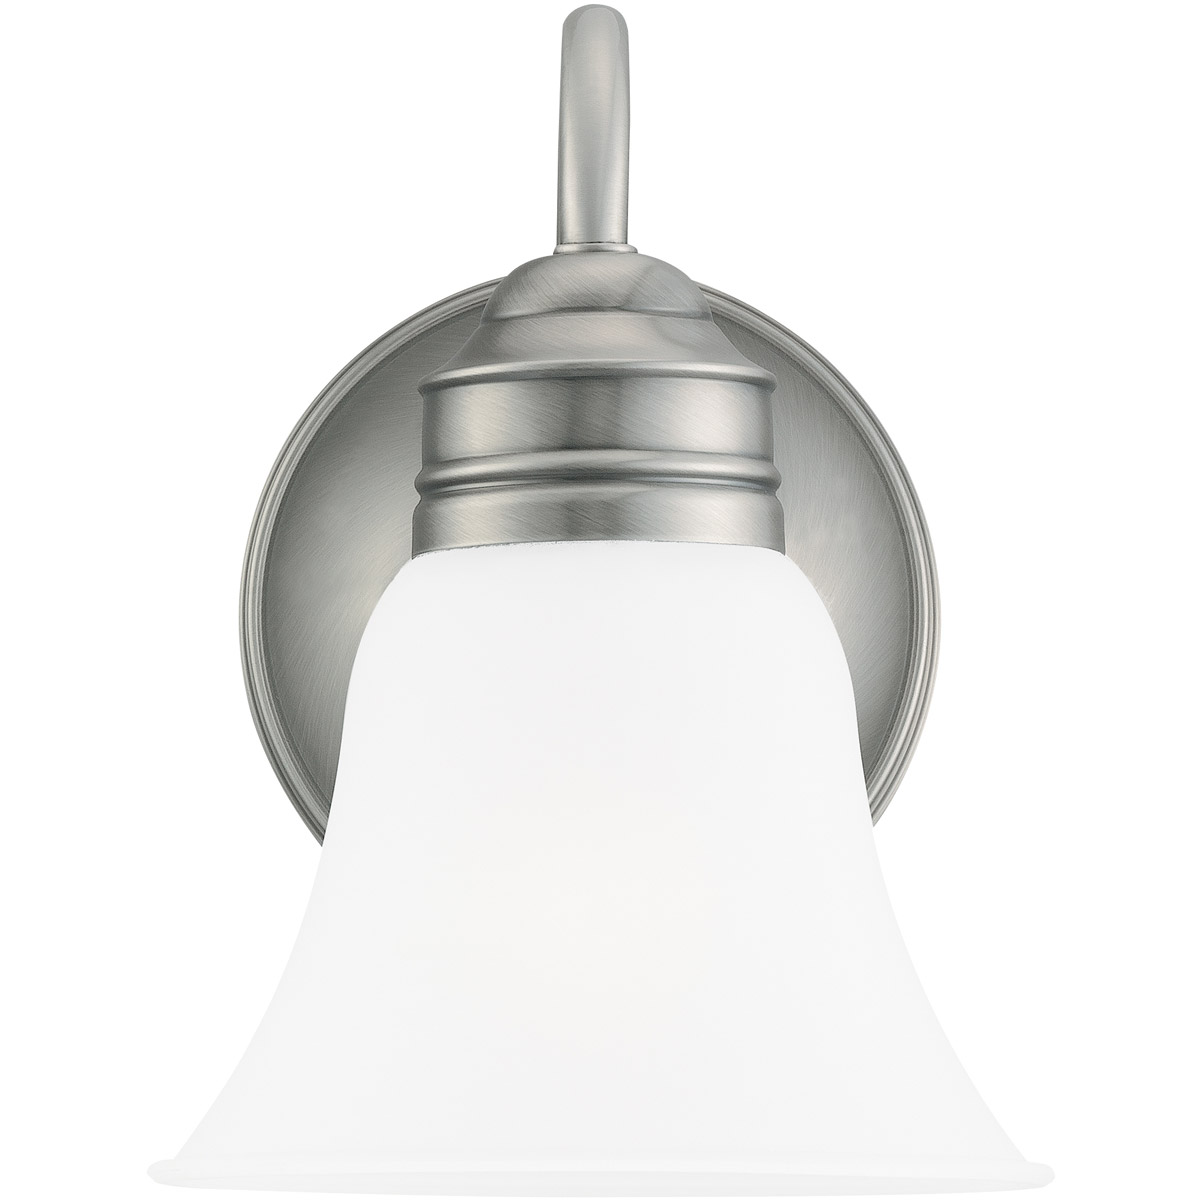 Sea Gull Lighting Gladstone 1 Light Bath Vanity in Antique Brushed Nickel 44850-965 photo